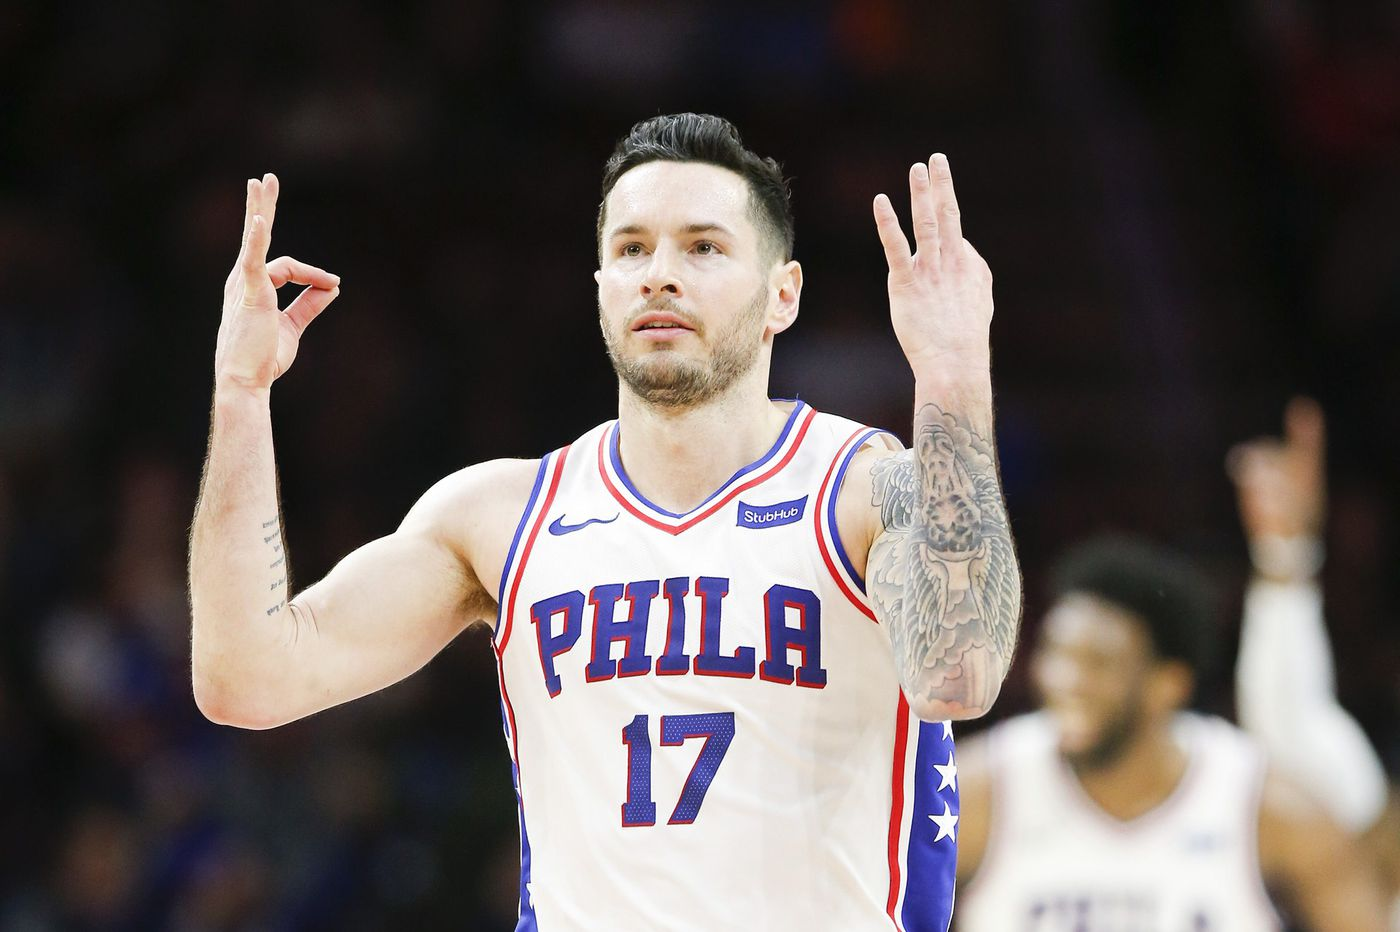 hot sale online afcba 7c8f5 Analysis: What can the Sixers expect from JJ Redick next season?